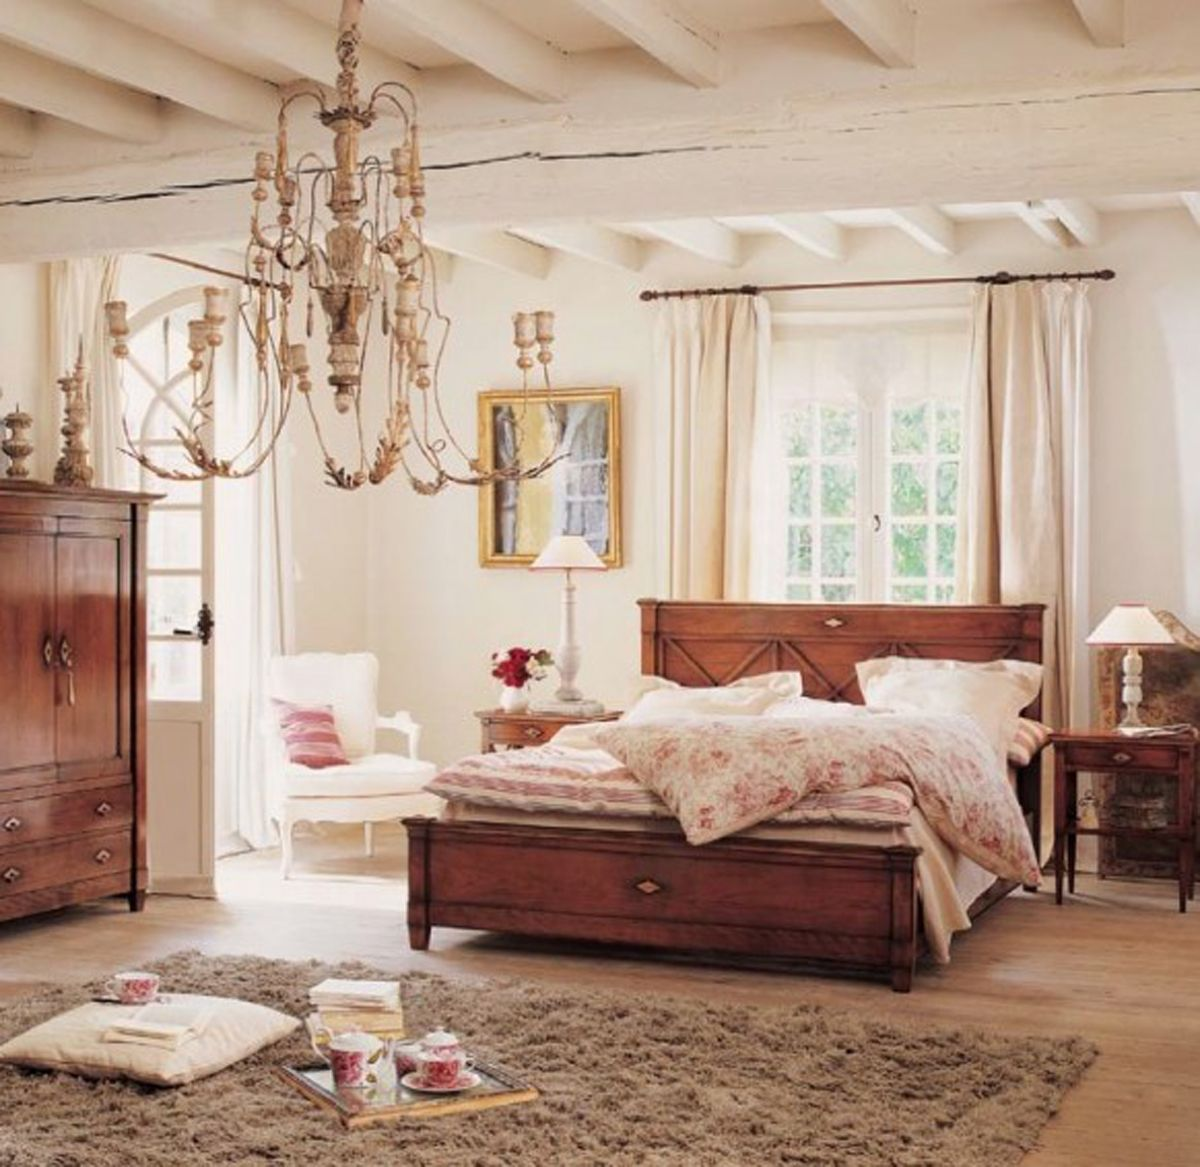 1000 images about comfortably bedroom decor with country style ideas on pinterest country style bedrooms country style and bedroom decor bedroom decorating country room ideas